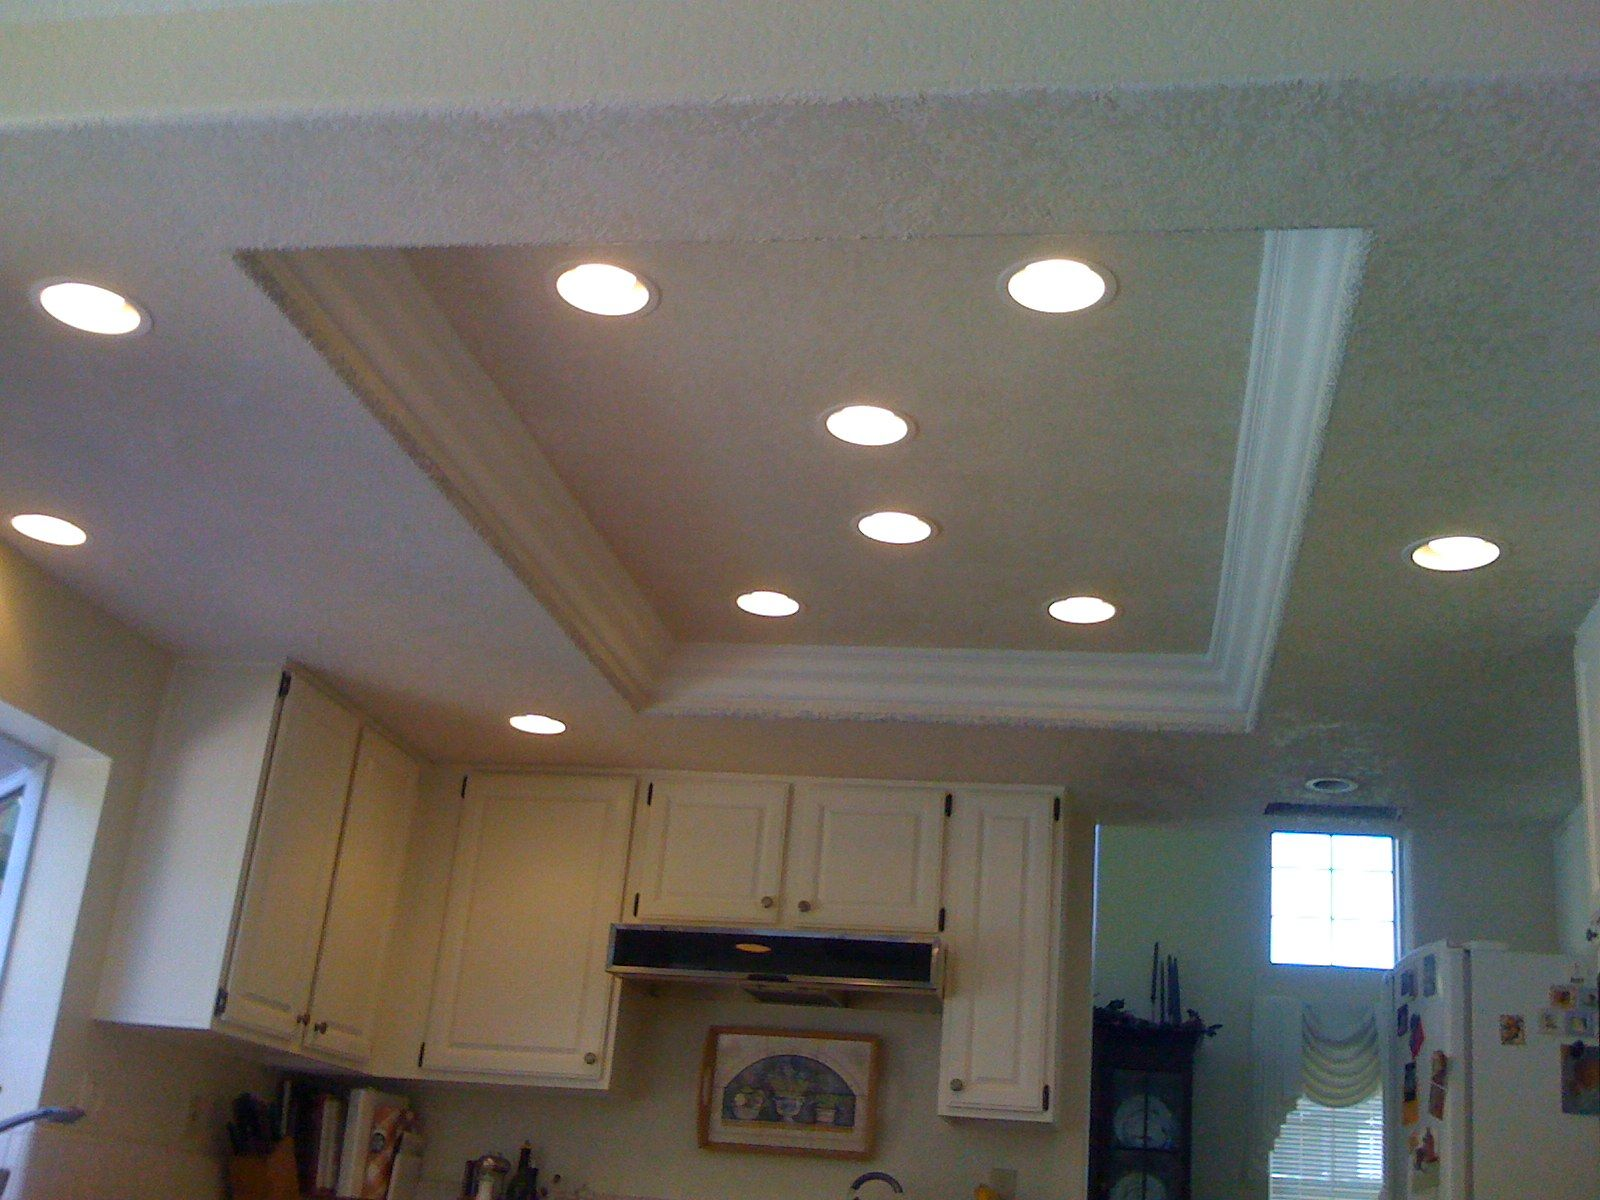 The Recessed Light Guy Kitchen Recessed Lighting Installing